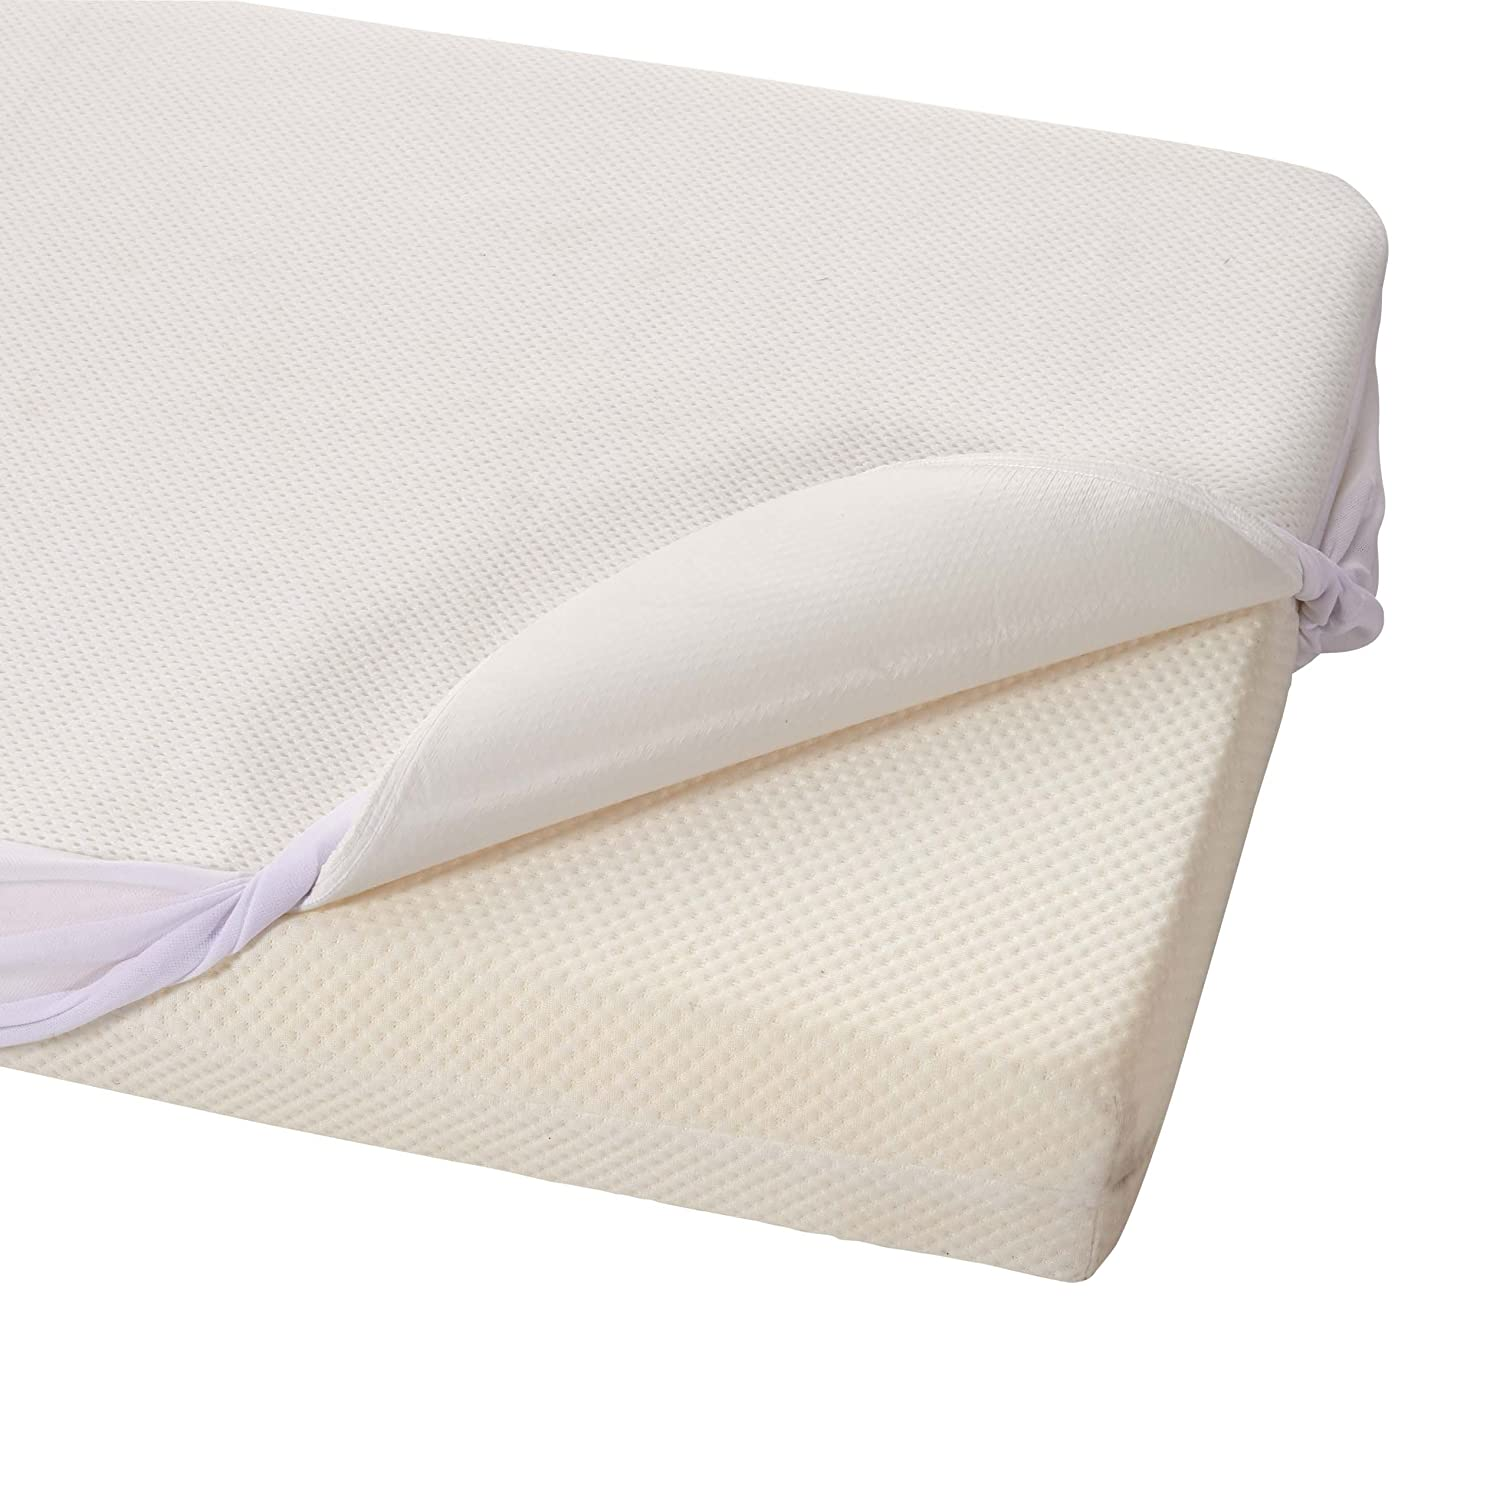 Candide Air + colcha 60 x 120 cm, color blanco 234360